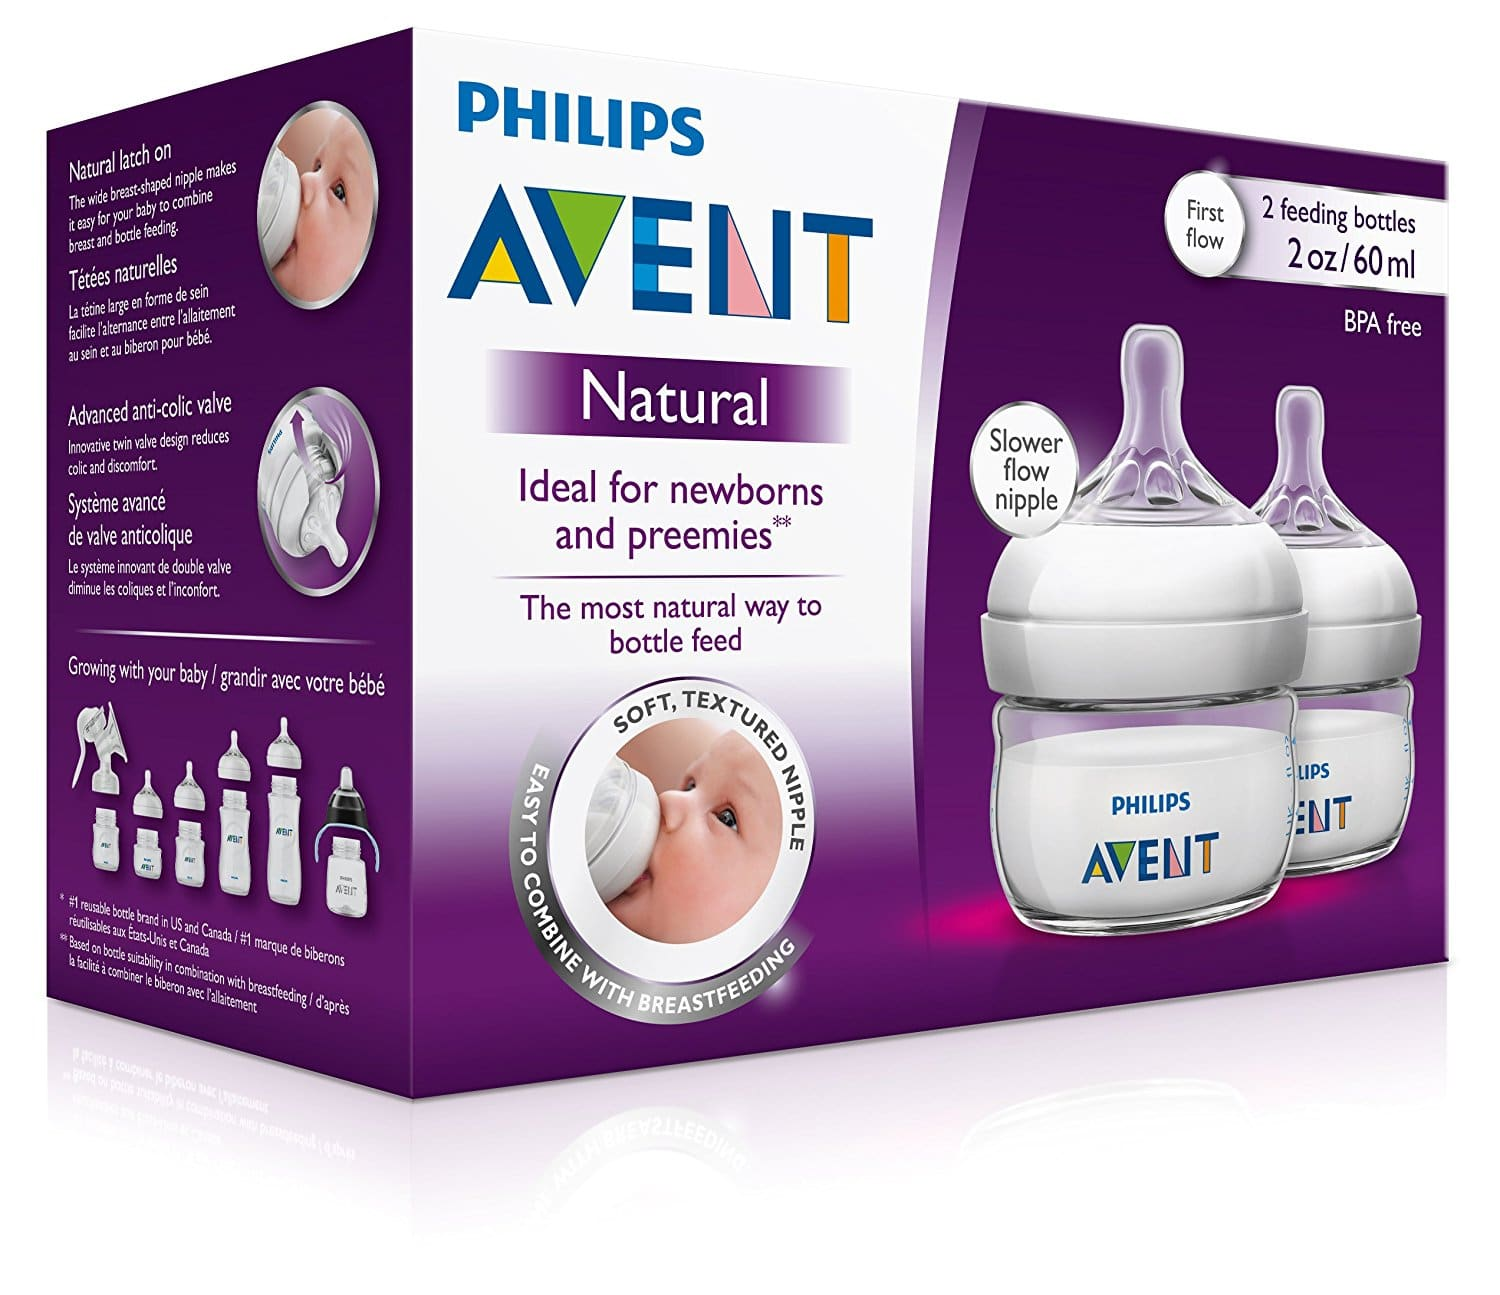 philips-avent-natural-2-oz